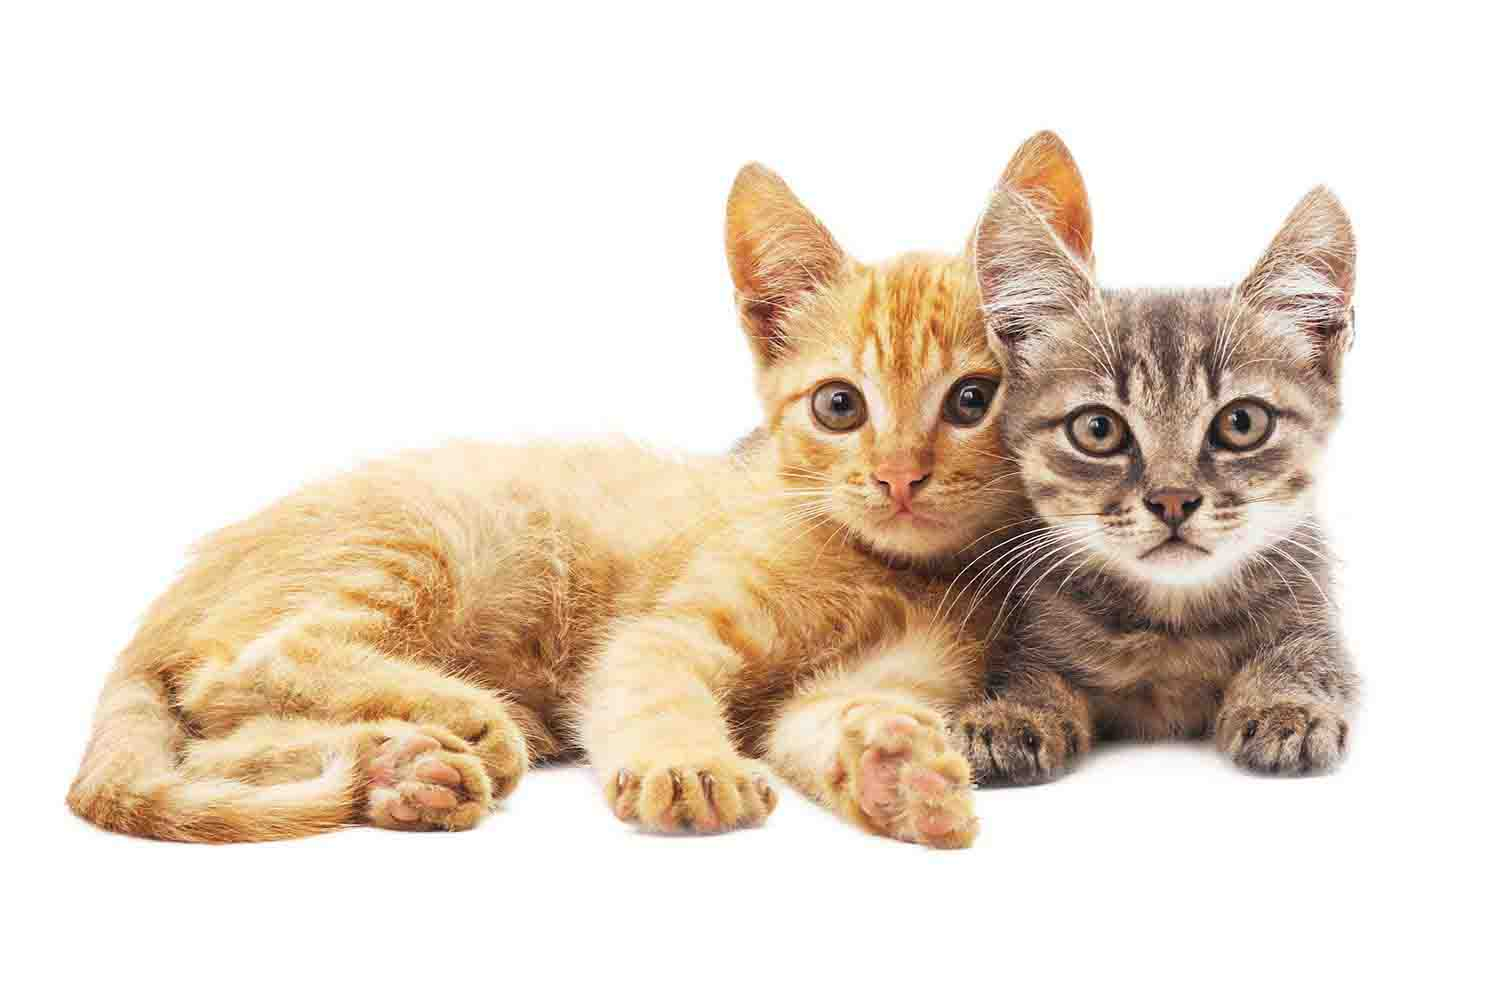 Vet Services for Cats